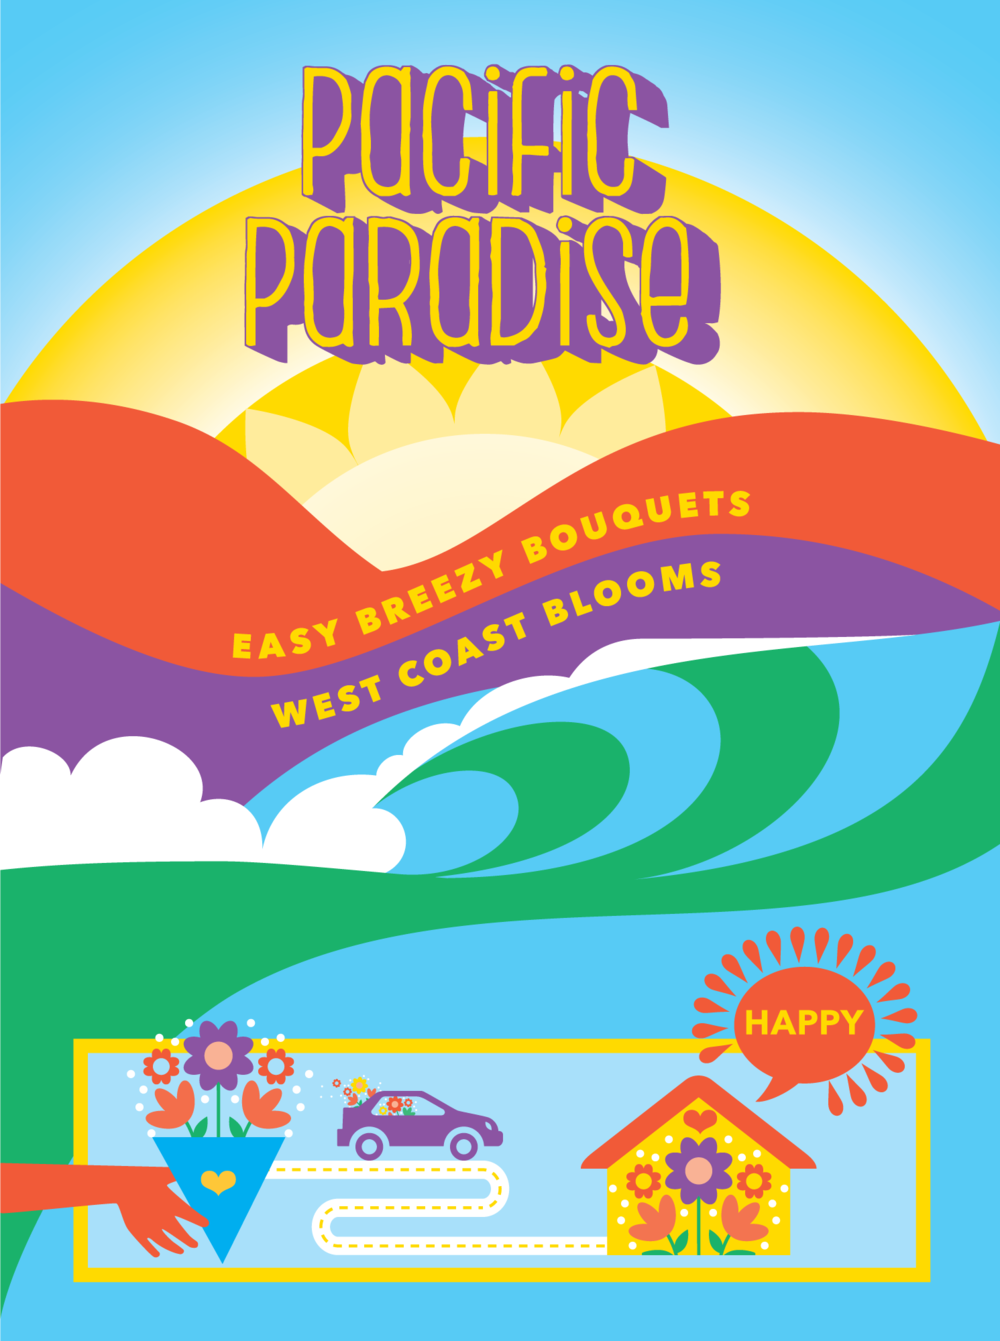 Poster-Pacific-Paradise.png